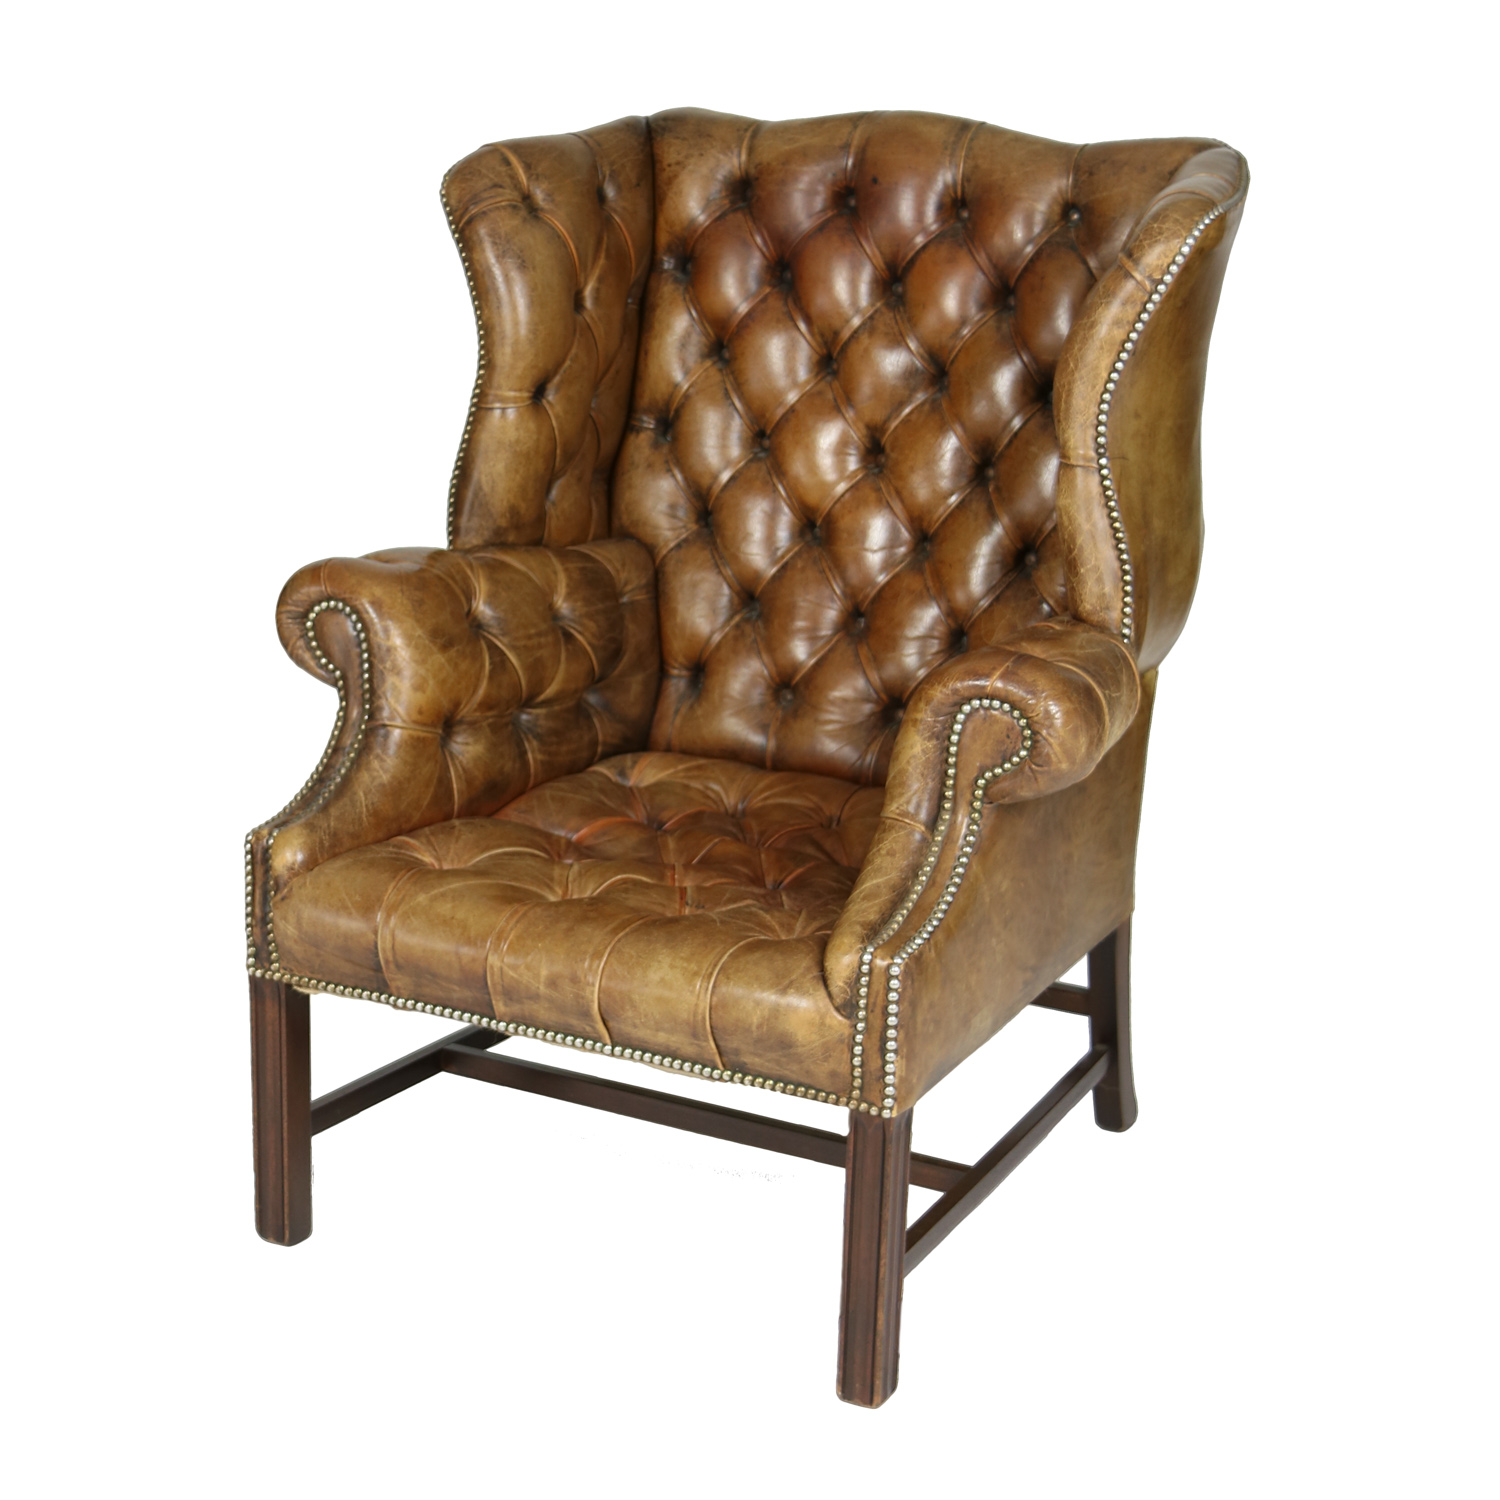 Garden Court Antiques, San Francisco -An Elegant Brown Tufted Leather and  Mahogany Wing Chair - Brown Tufted Leather English 19th C. Wingback Chair. Ph (415) 355-1690